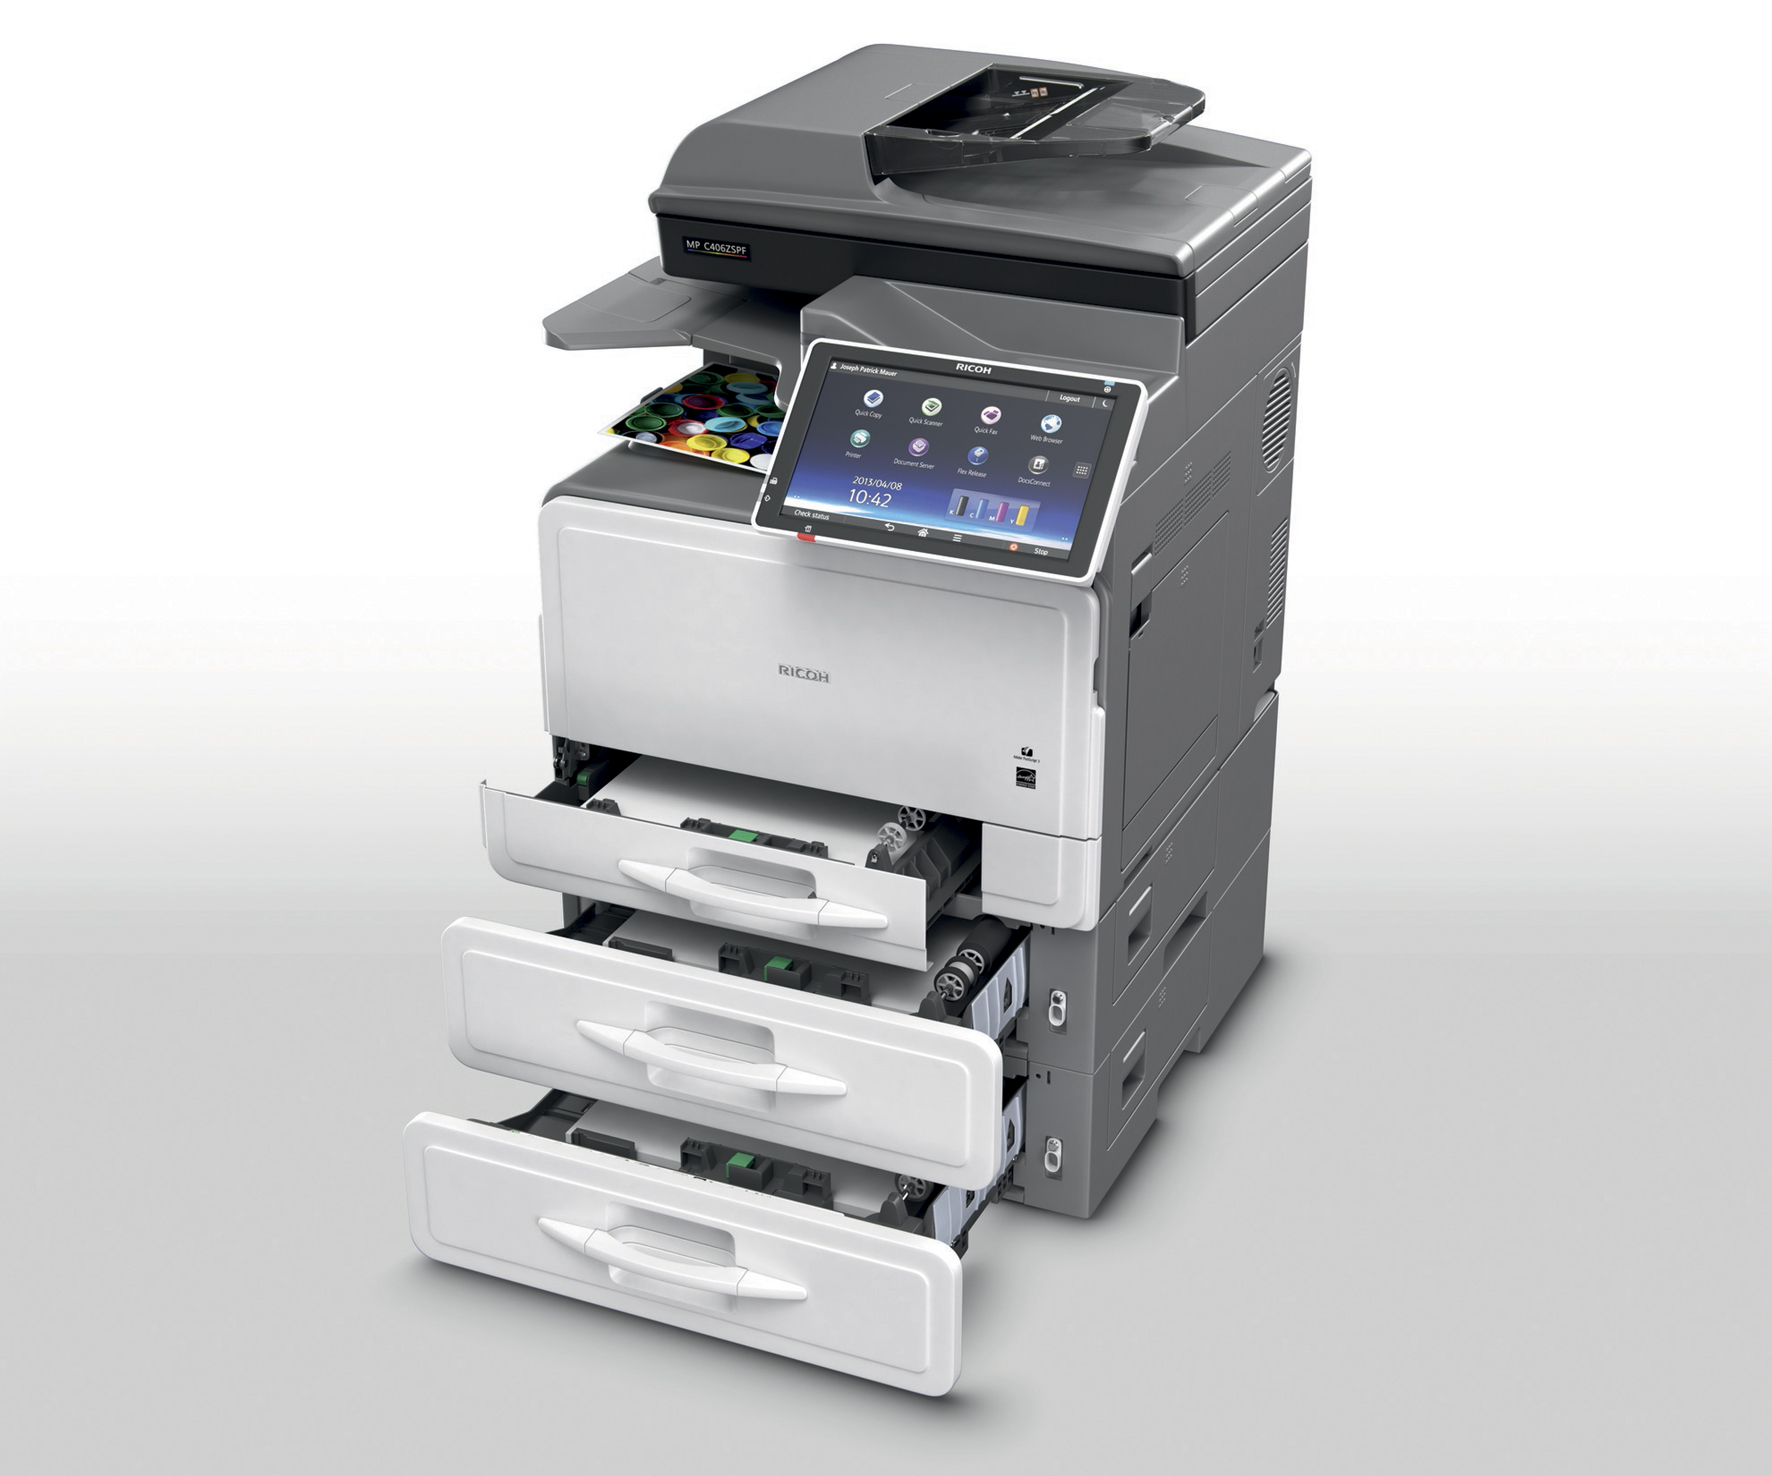 IPSL - integrated managed print and document solutions